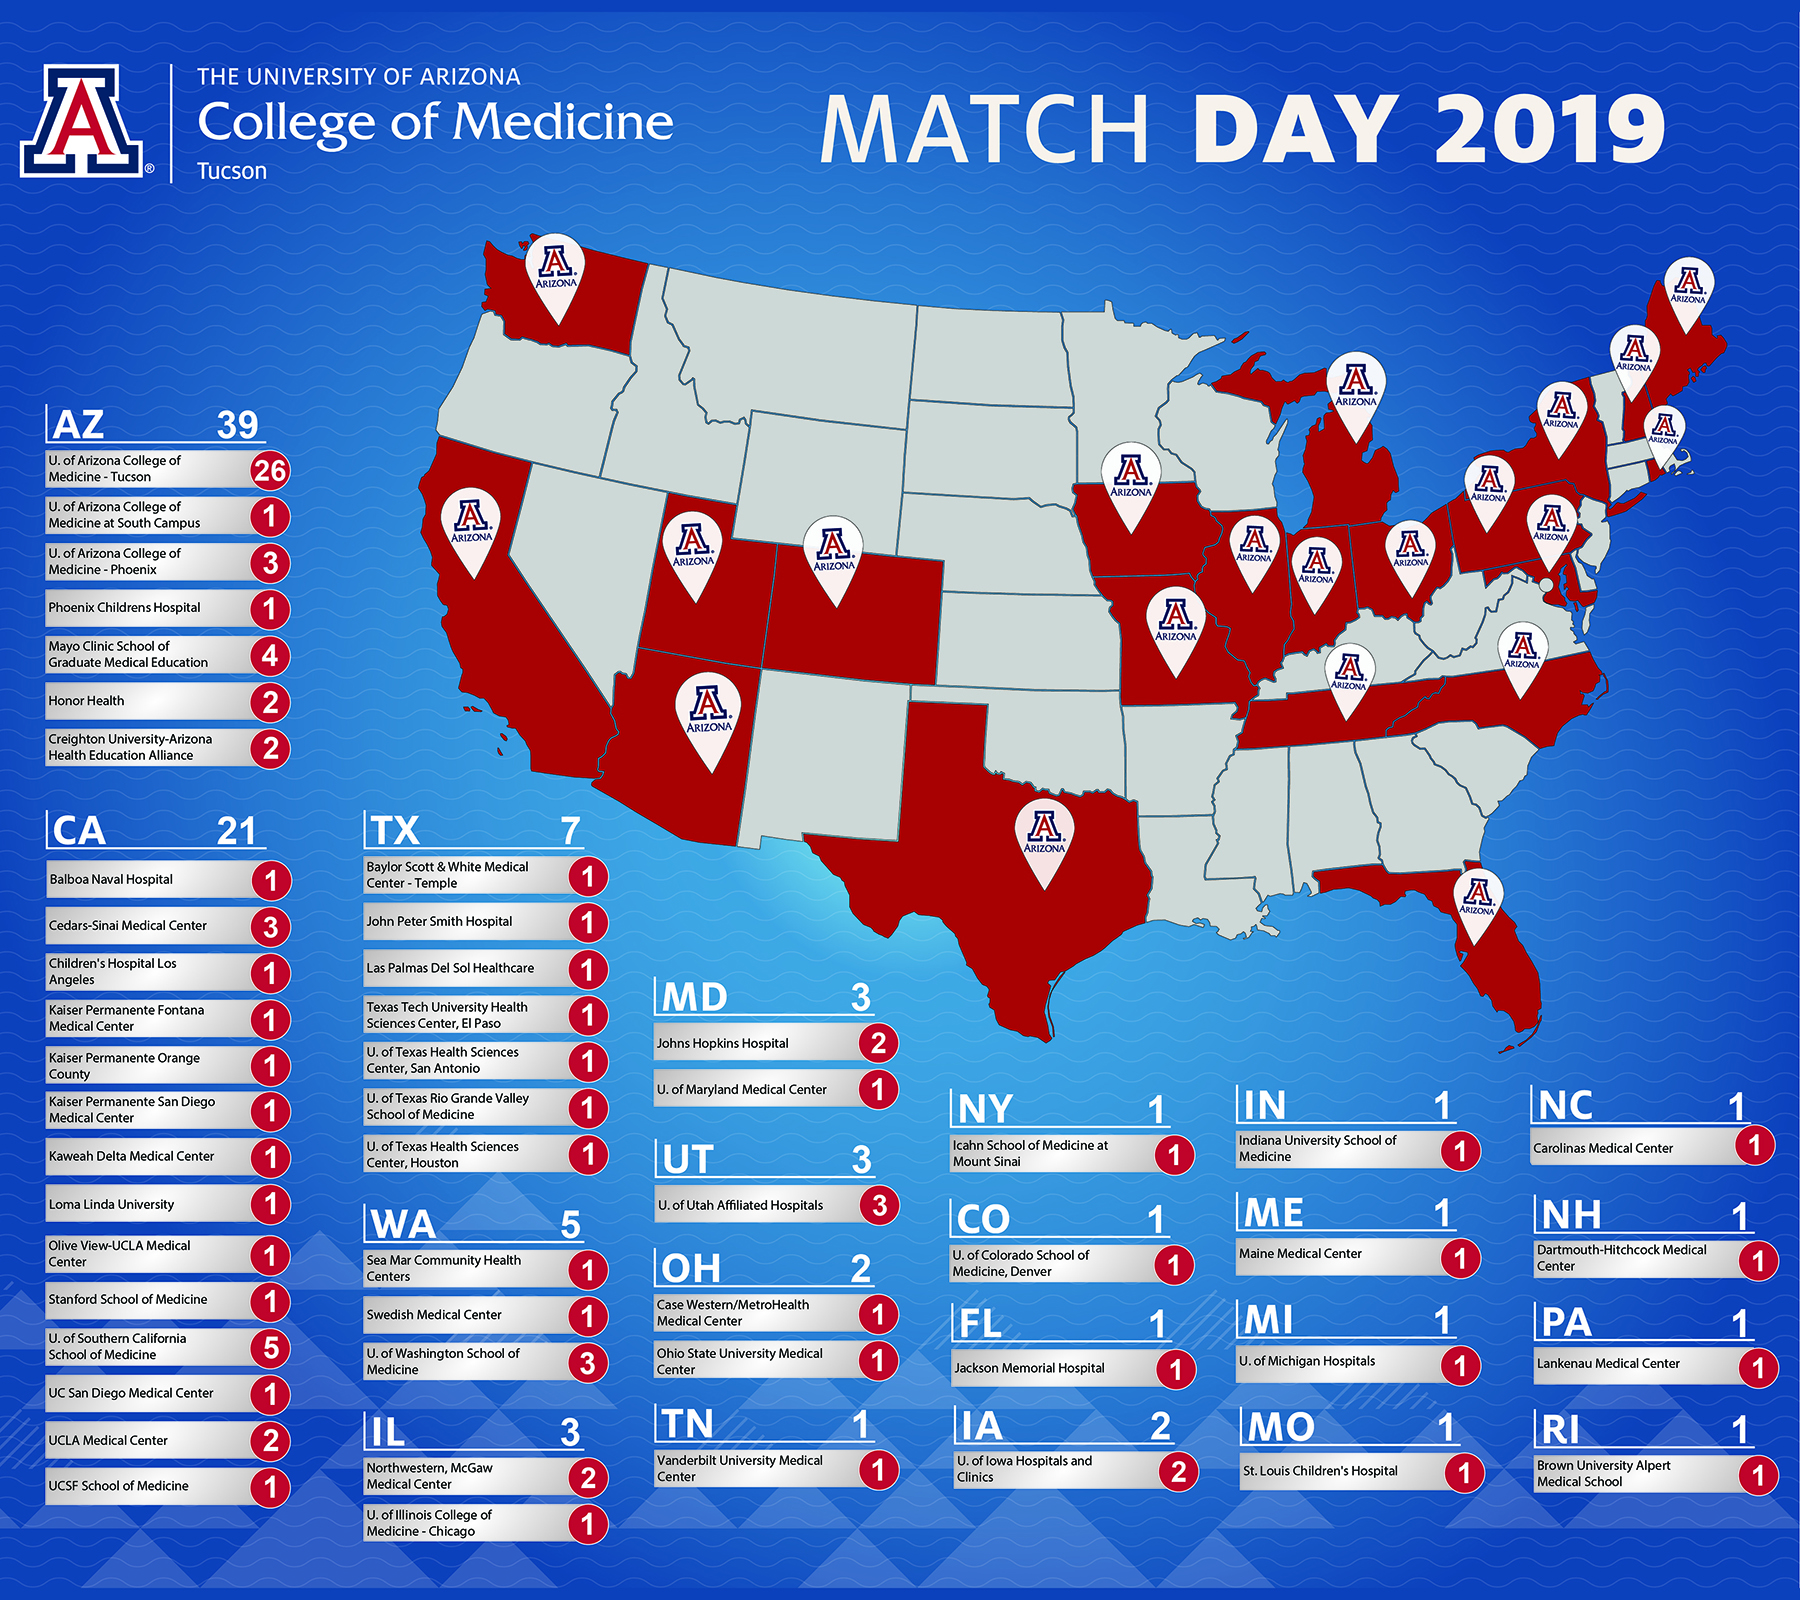 UA Match Day Results: 49 DOM Incoming Residents, with 46 in